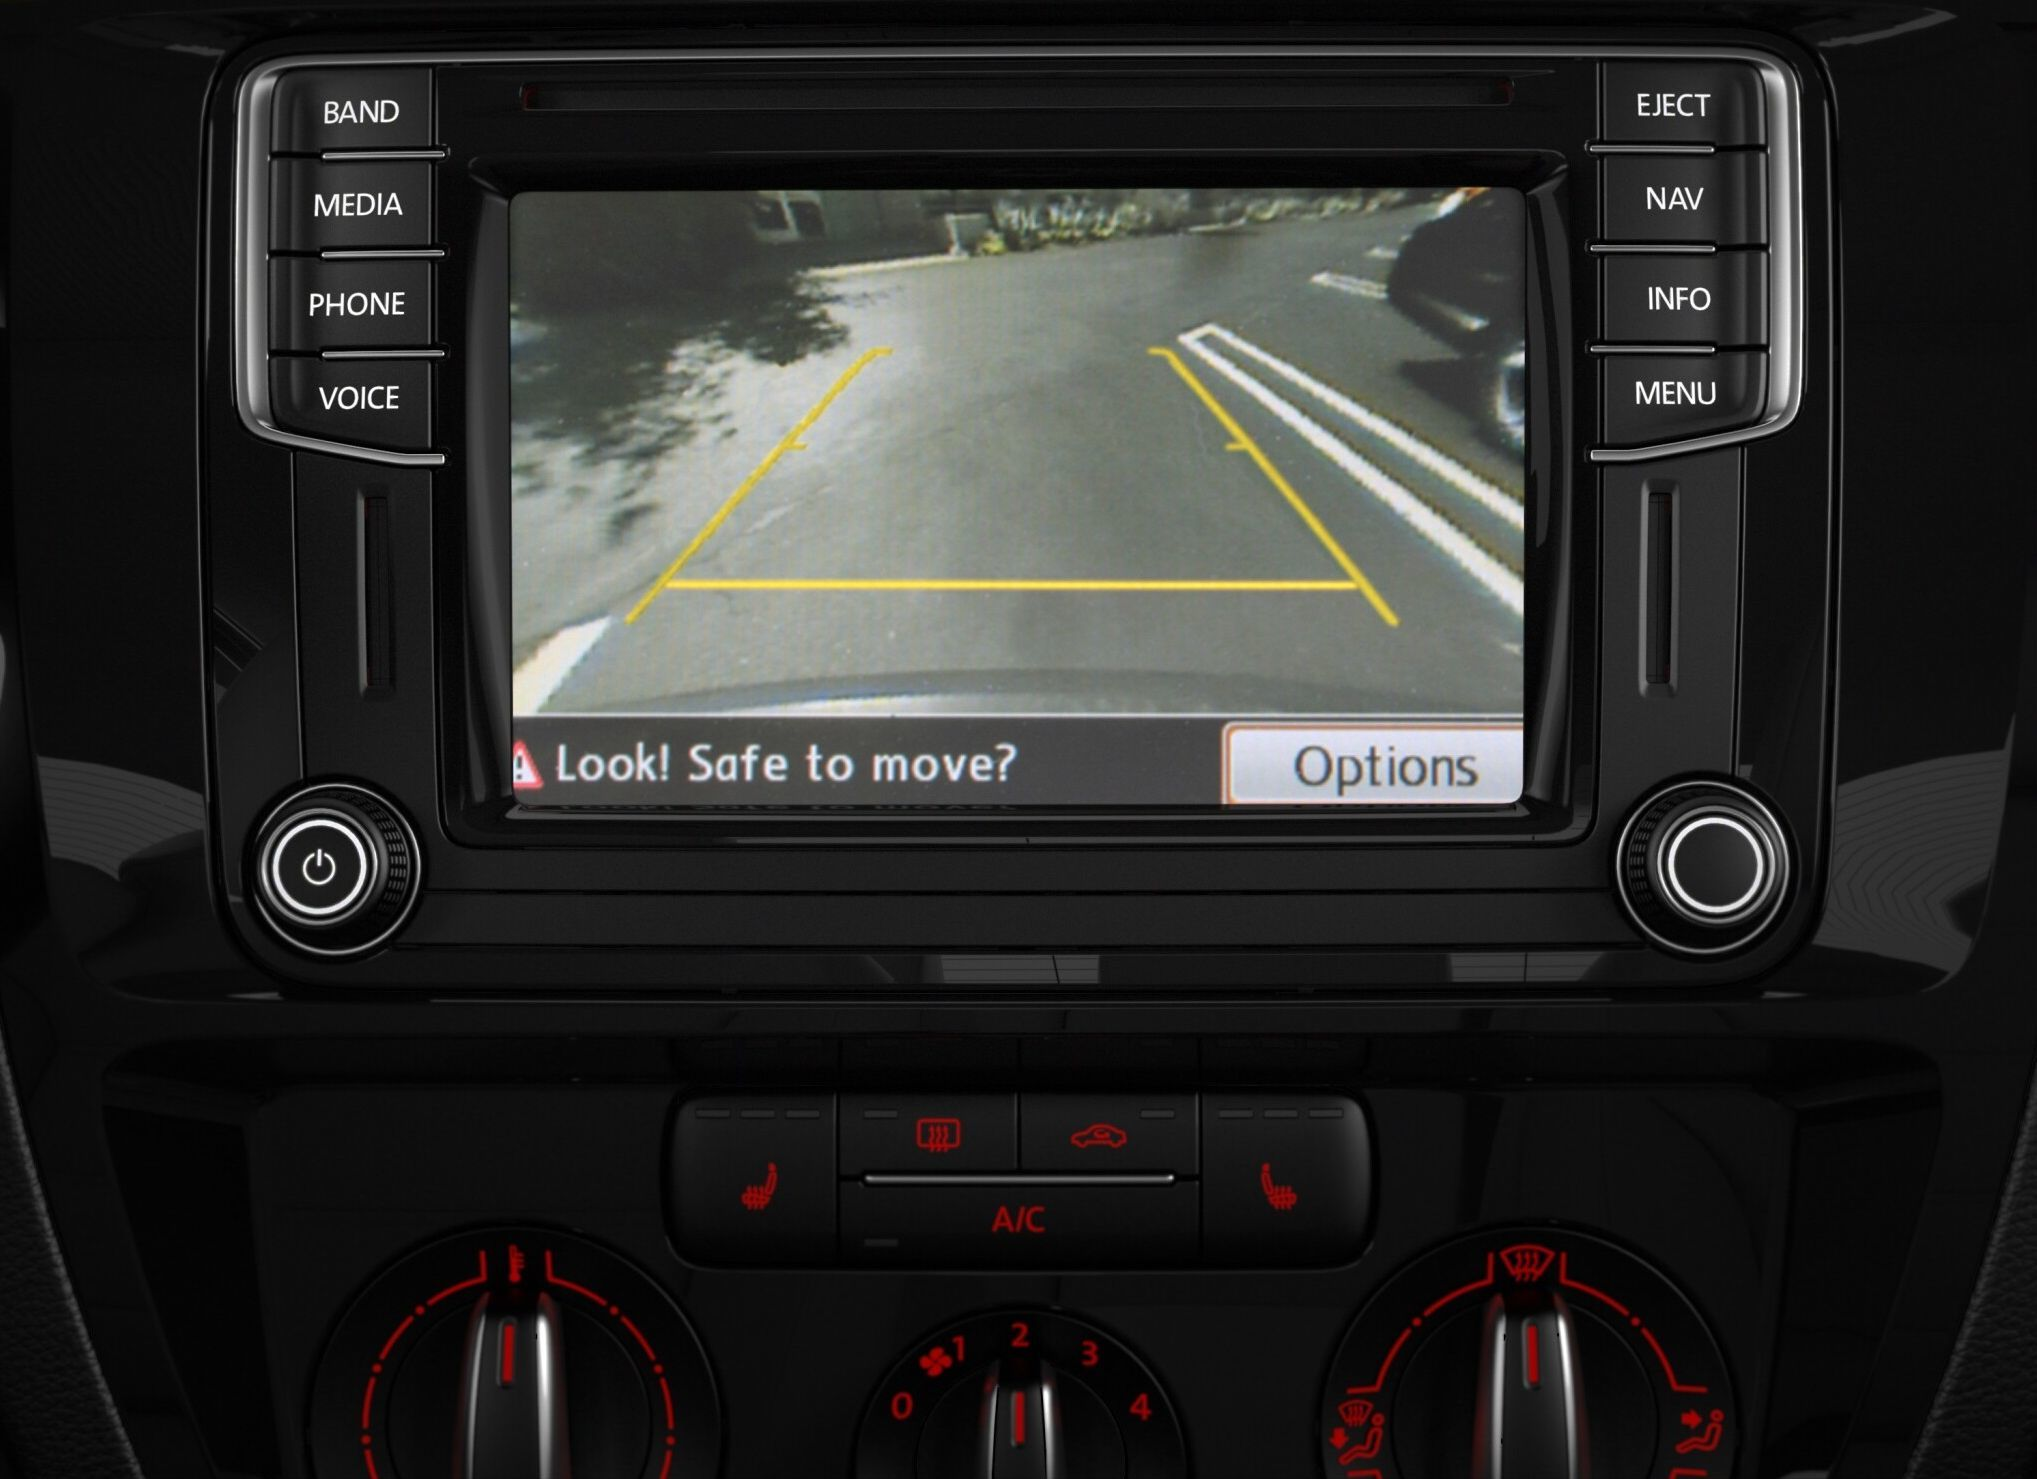 VW Jetta Rearview Camera and Climate Control